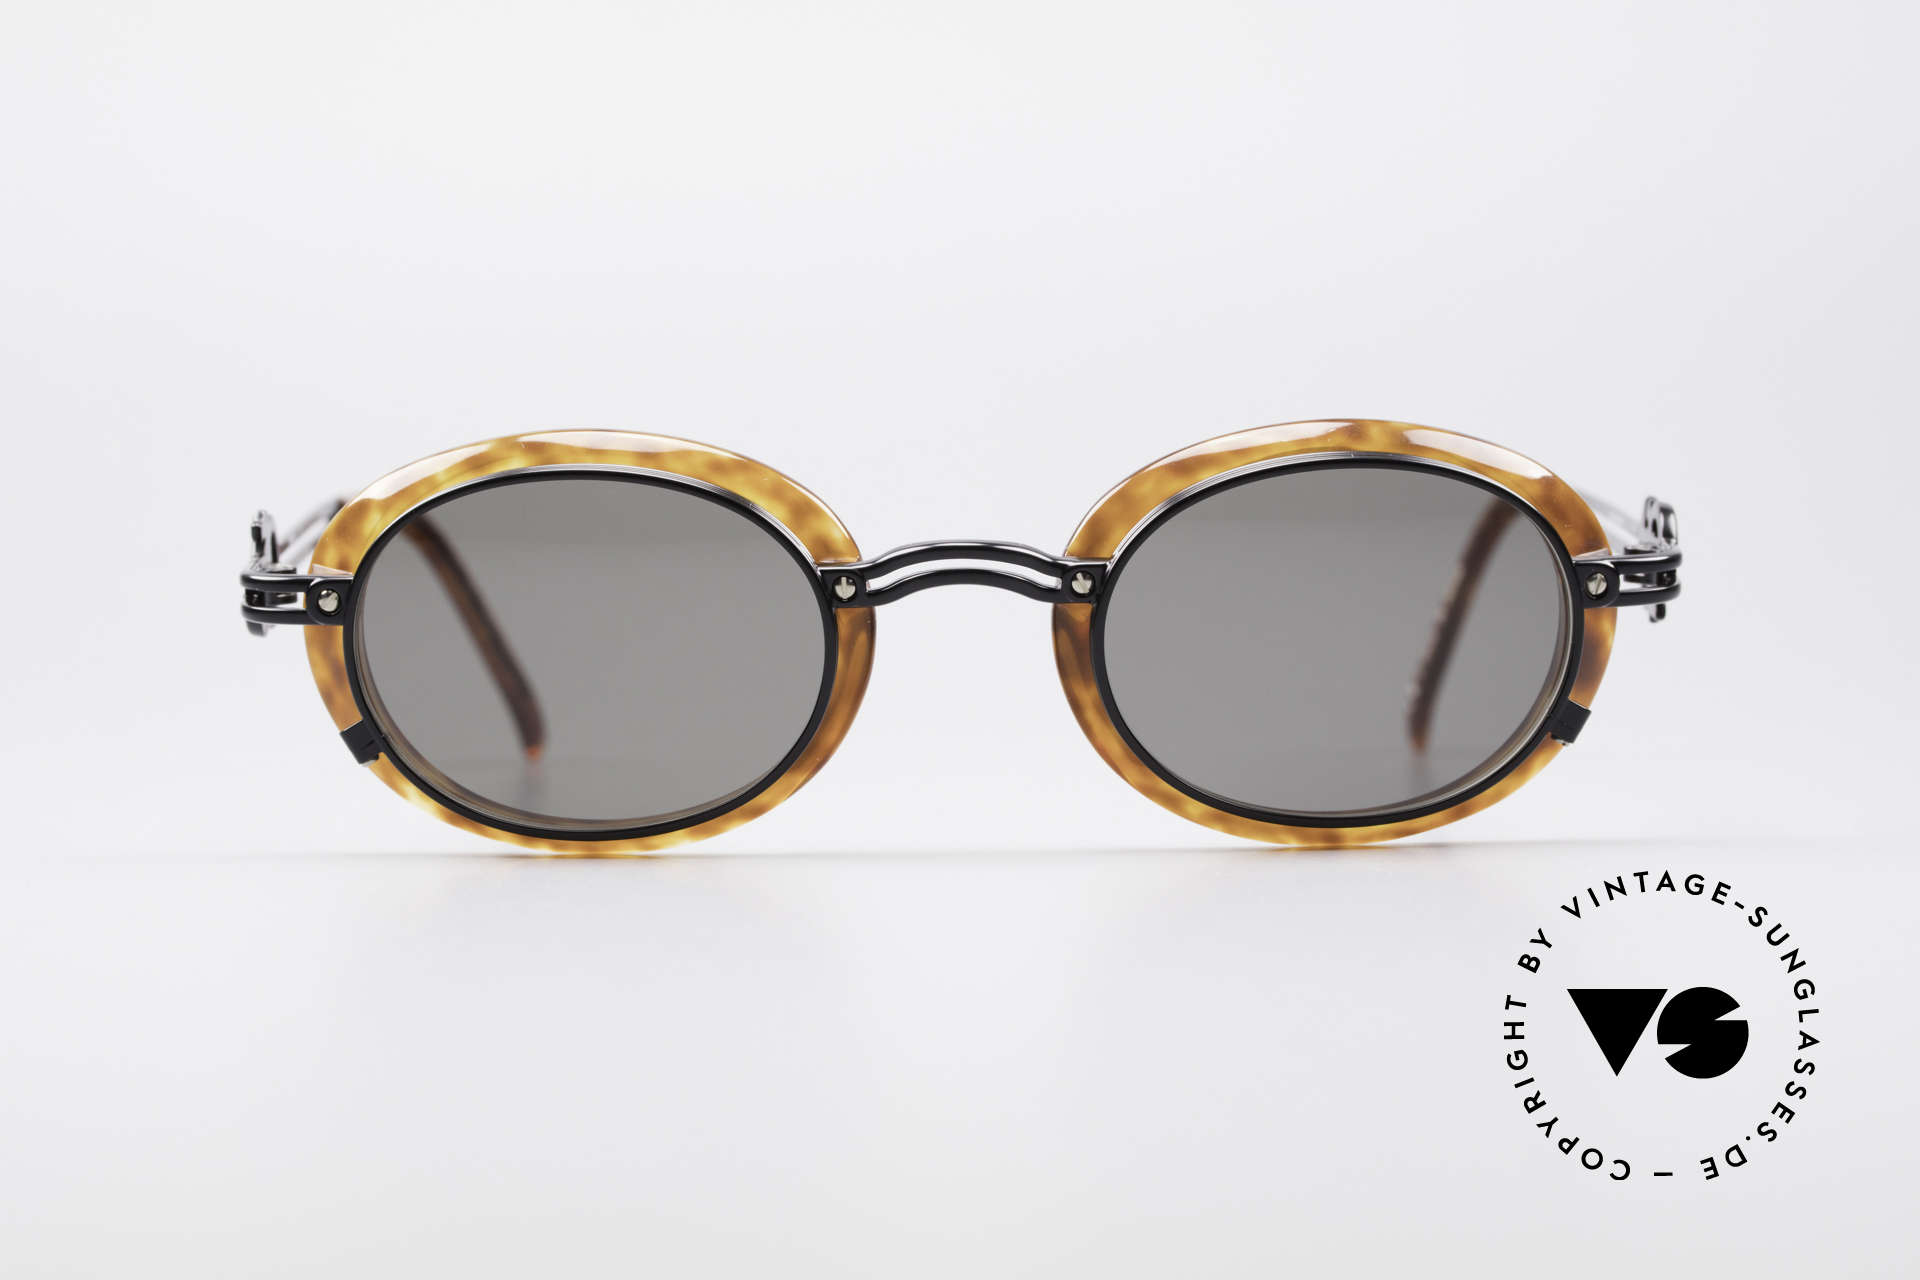 Jean Paul Gaultier 58-5201 Rare 90's Steampunk Shades, great combination of materials and design details, Made for Men and Women